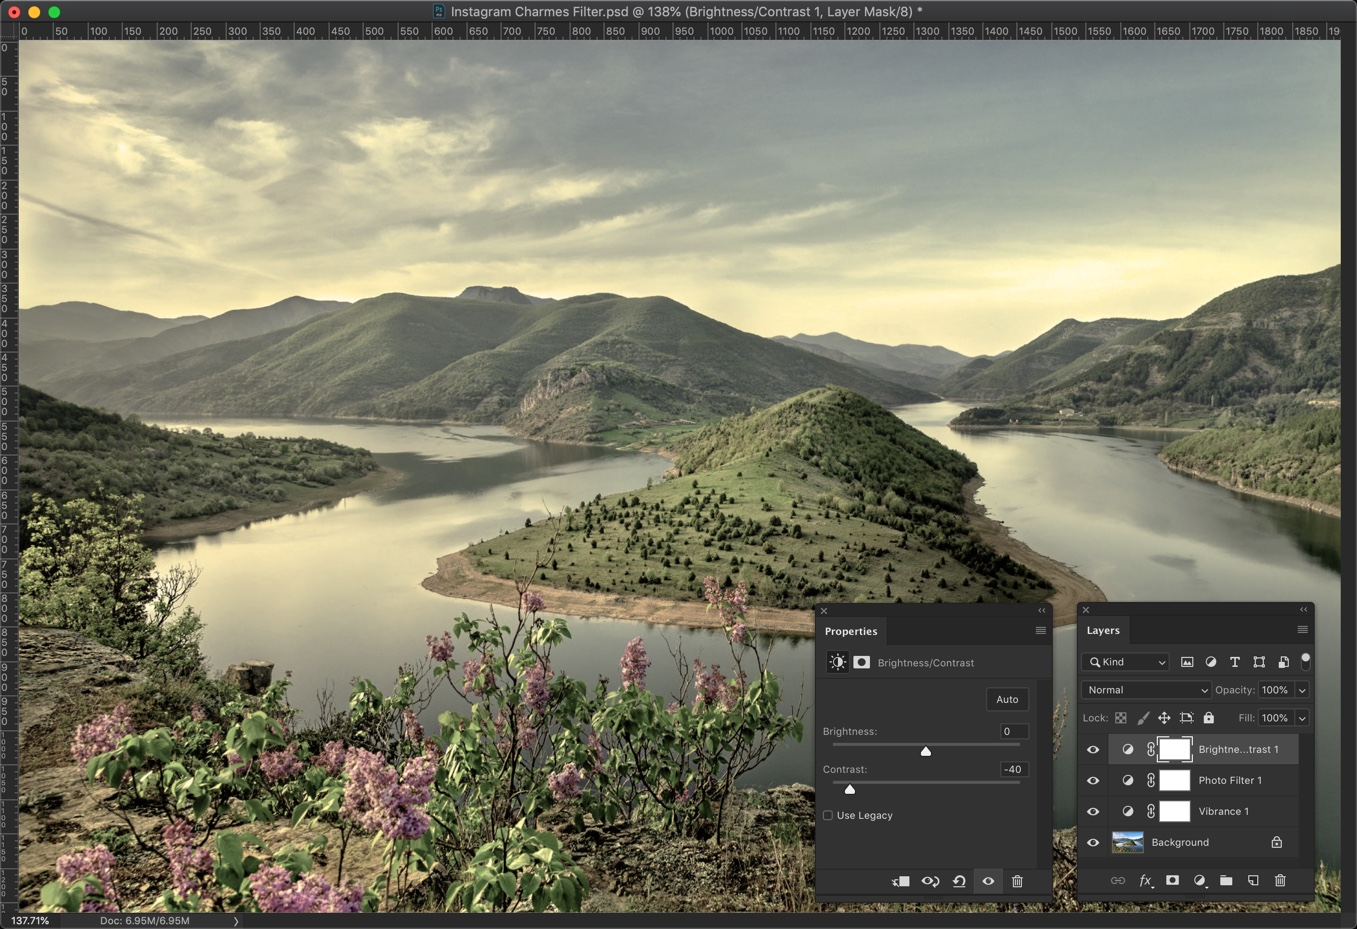 5-1 - Create Instagram Charmes Filter in Photoshop [Action Included]